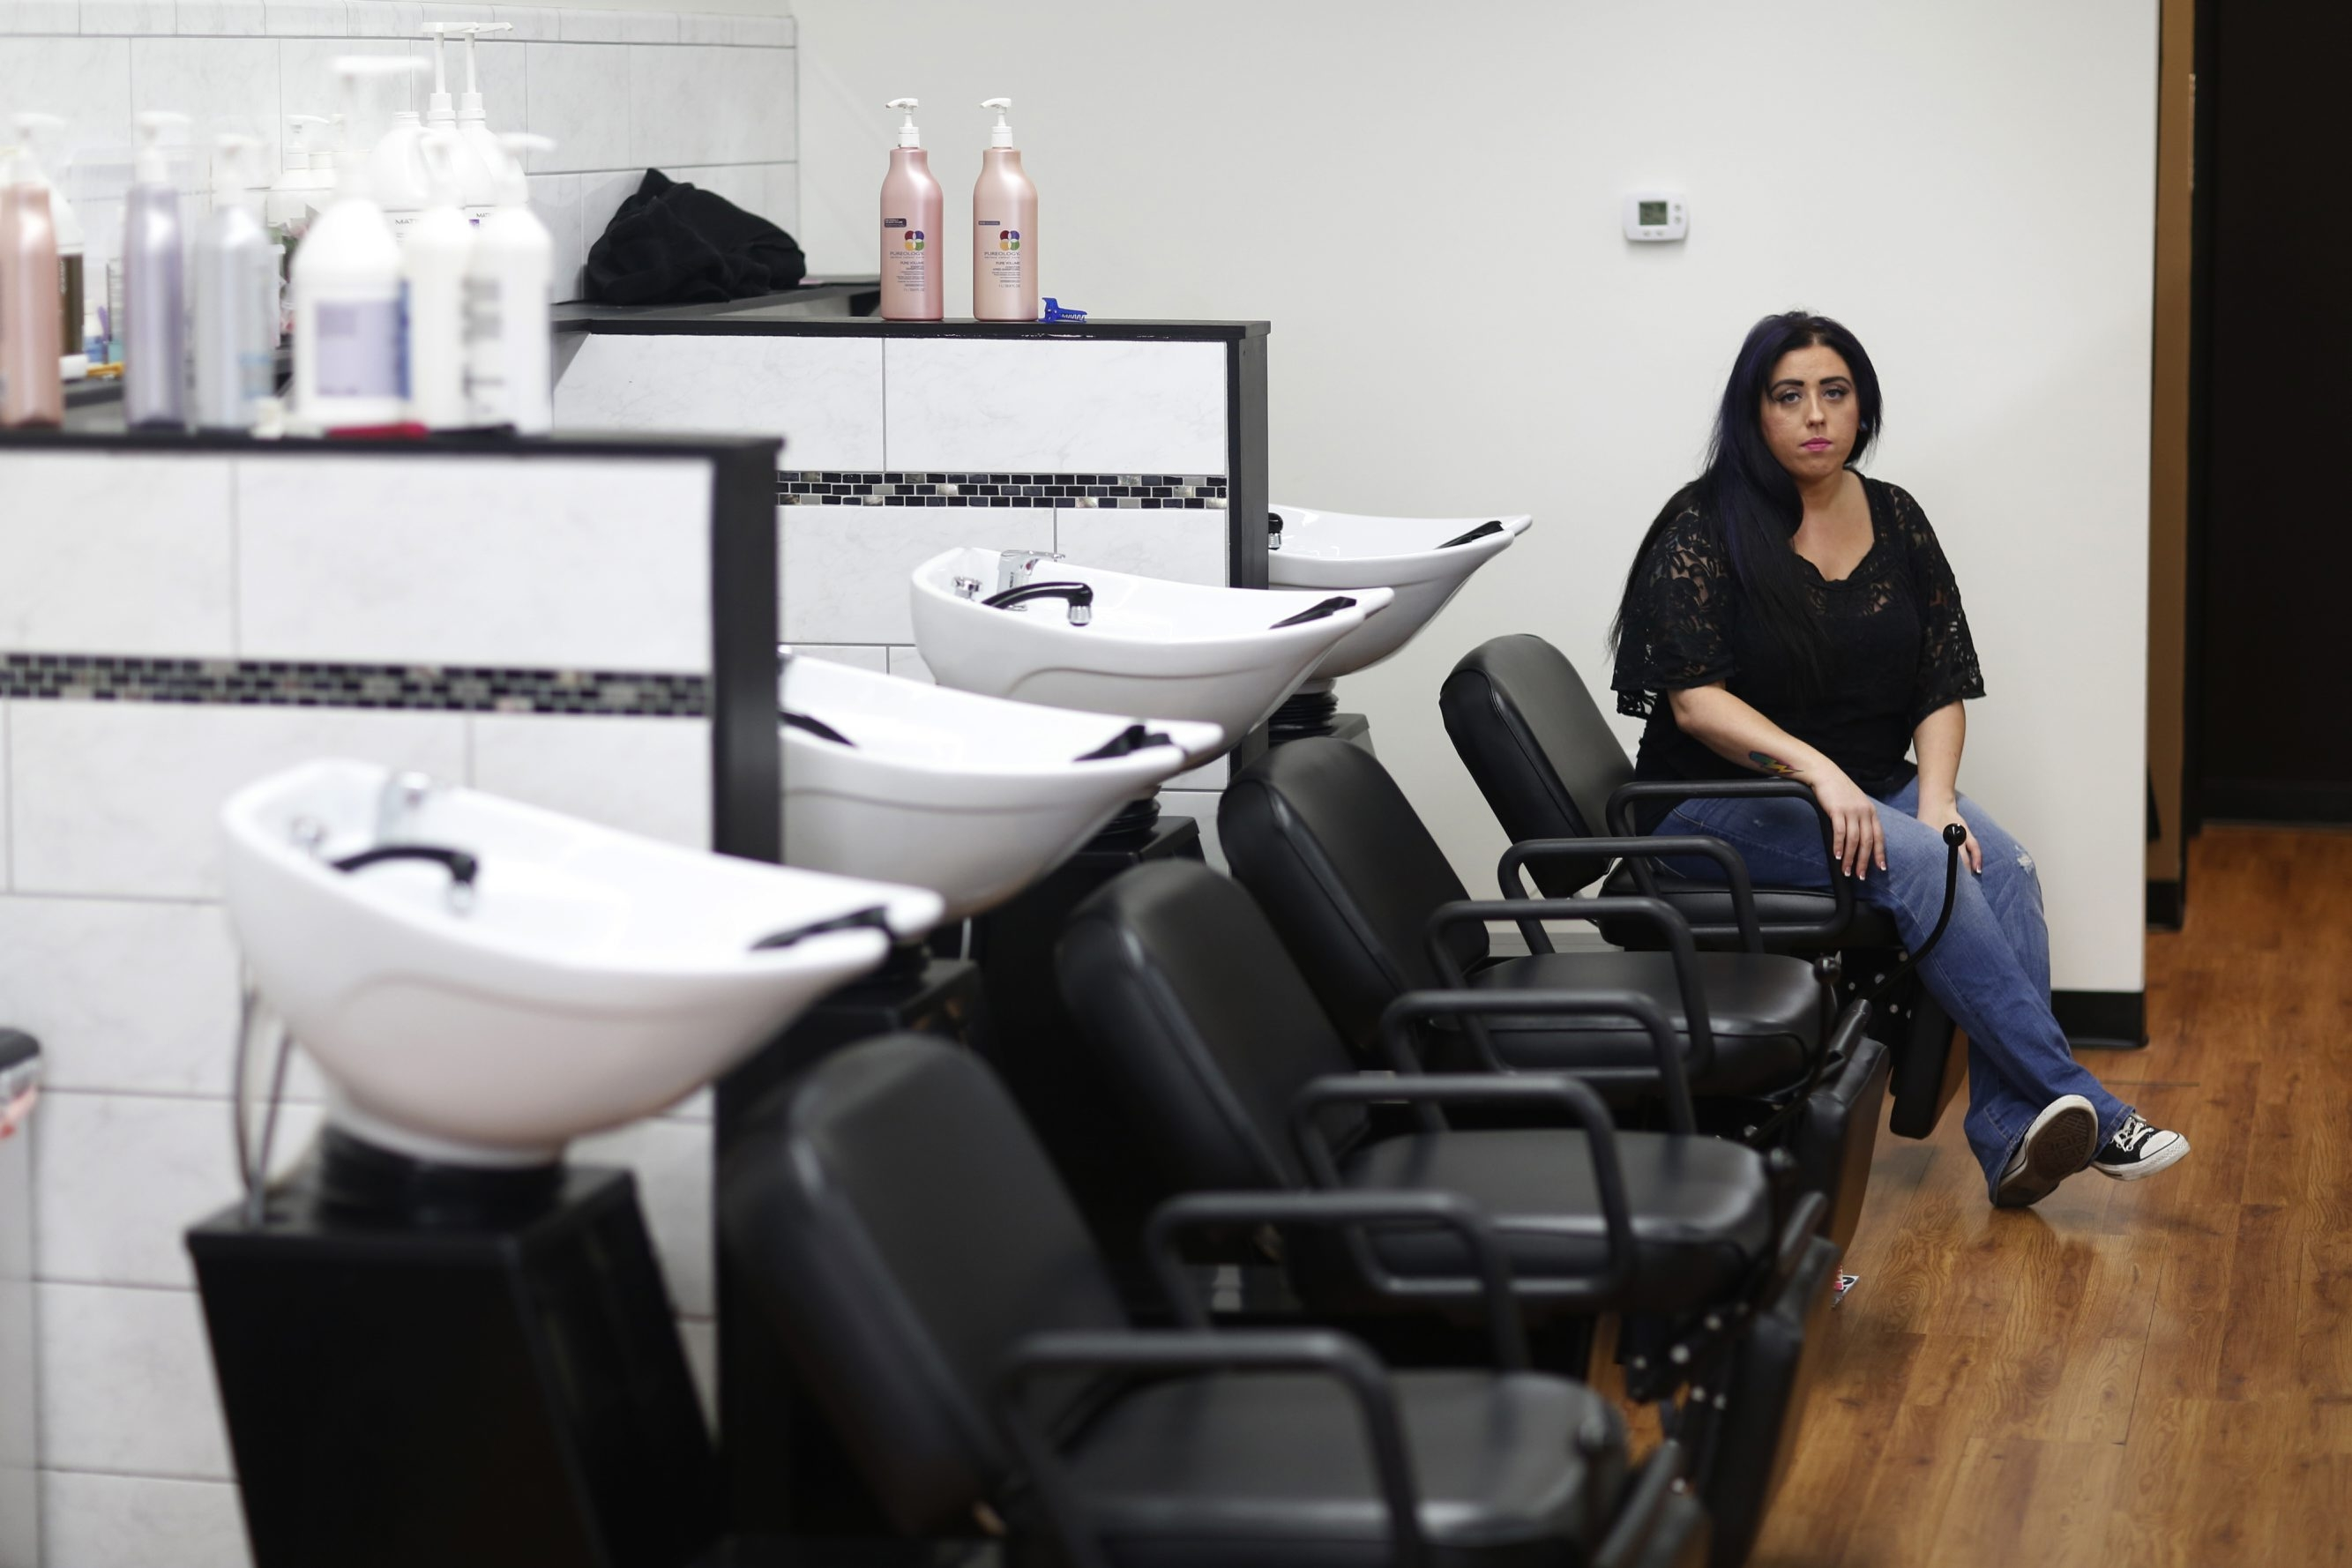 """I'm starting at the bottom,"" says Brittany Himes, 28, who is making $7.20 an hour, with $27,000 in student loans, as an appren- tice stylist at a salon in Richmond, Ky., four years after graduating with a degree in business from Eastern Kentucky University."